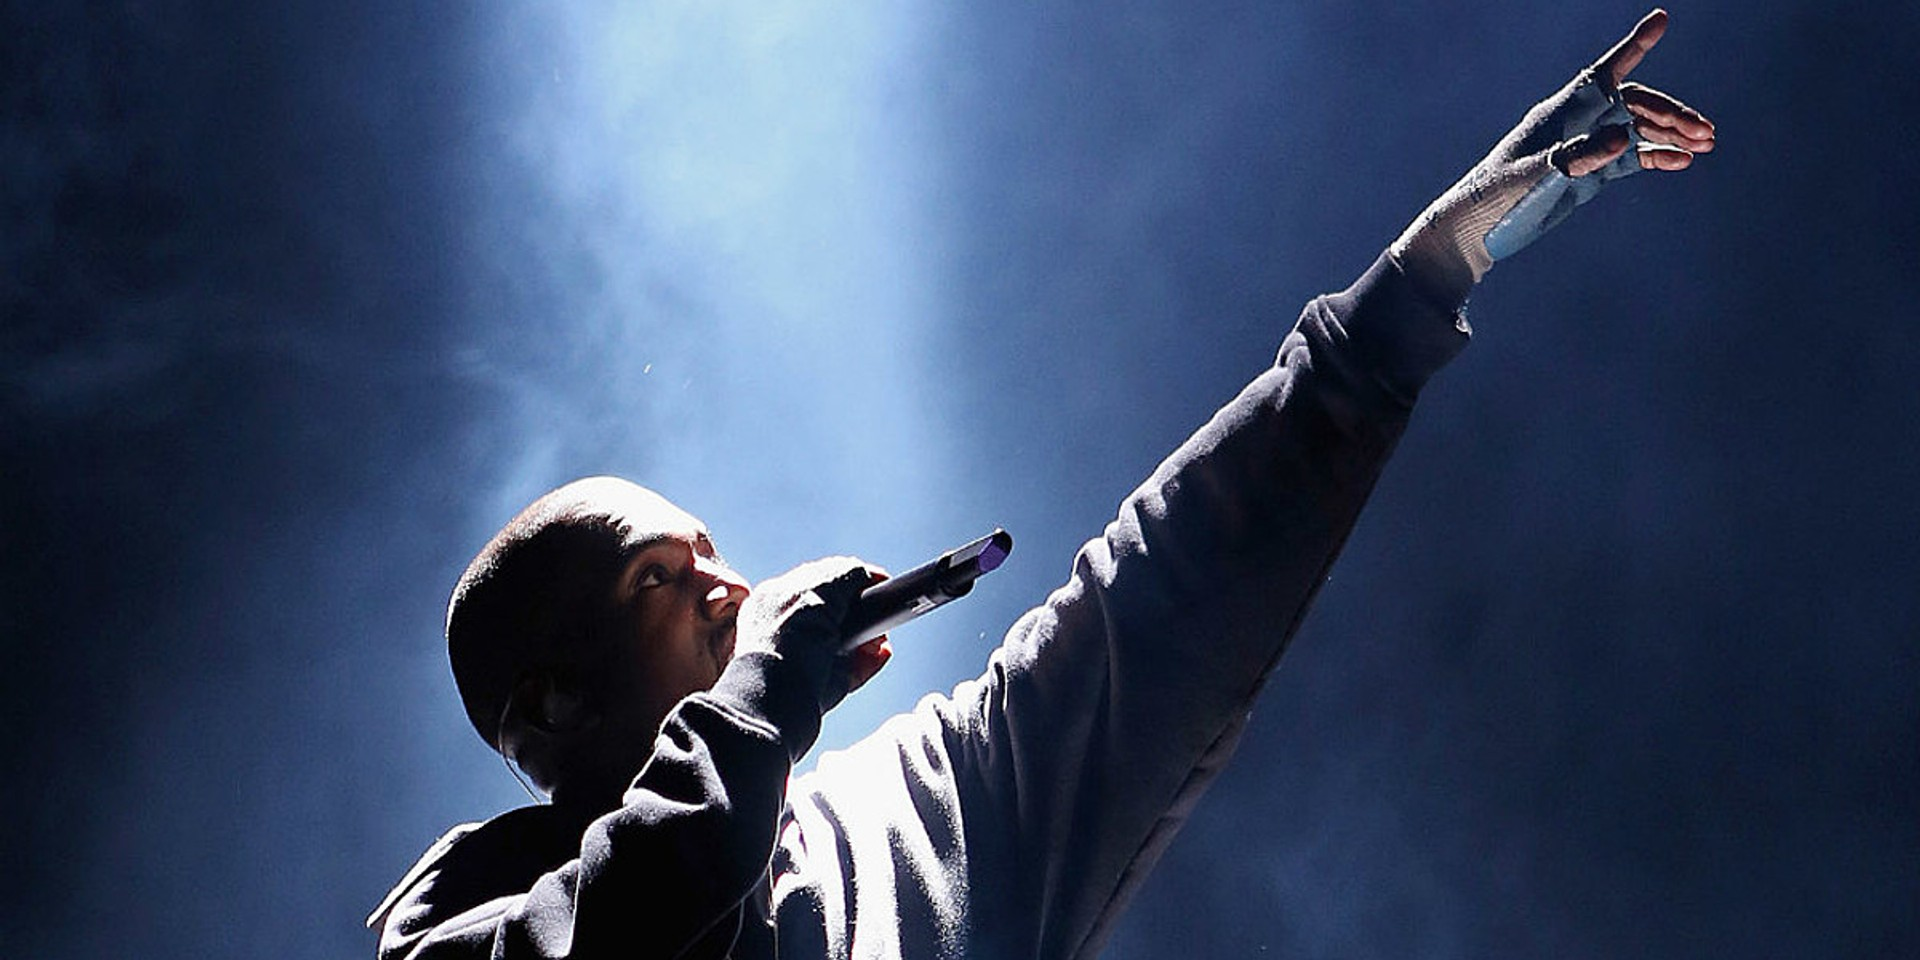 Kanye West announces IMAX release of Jesus Is King film